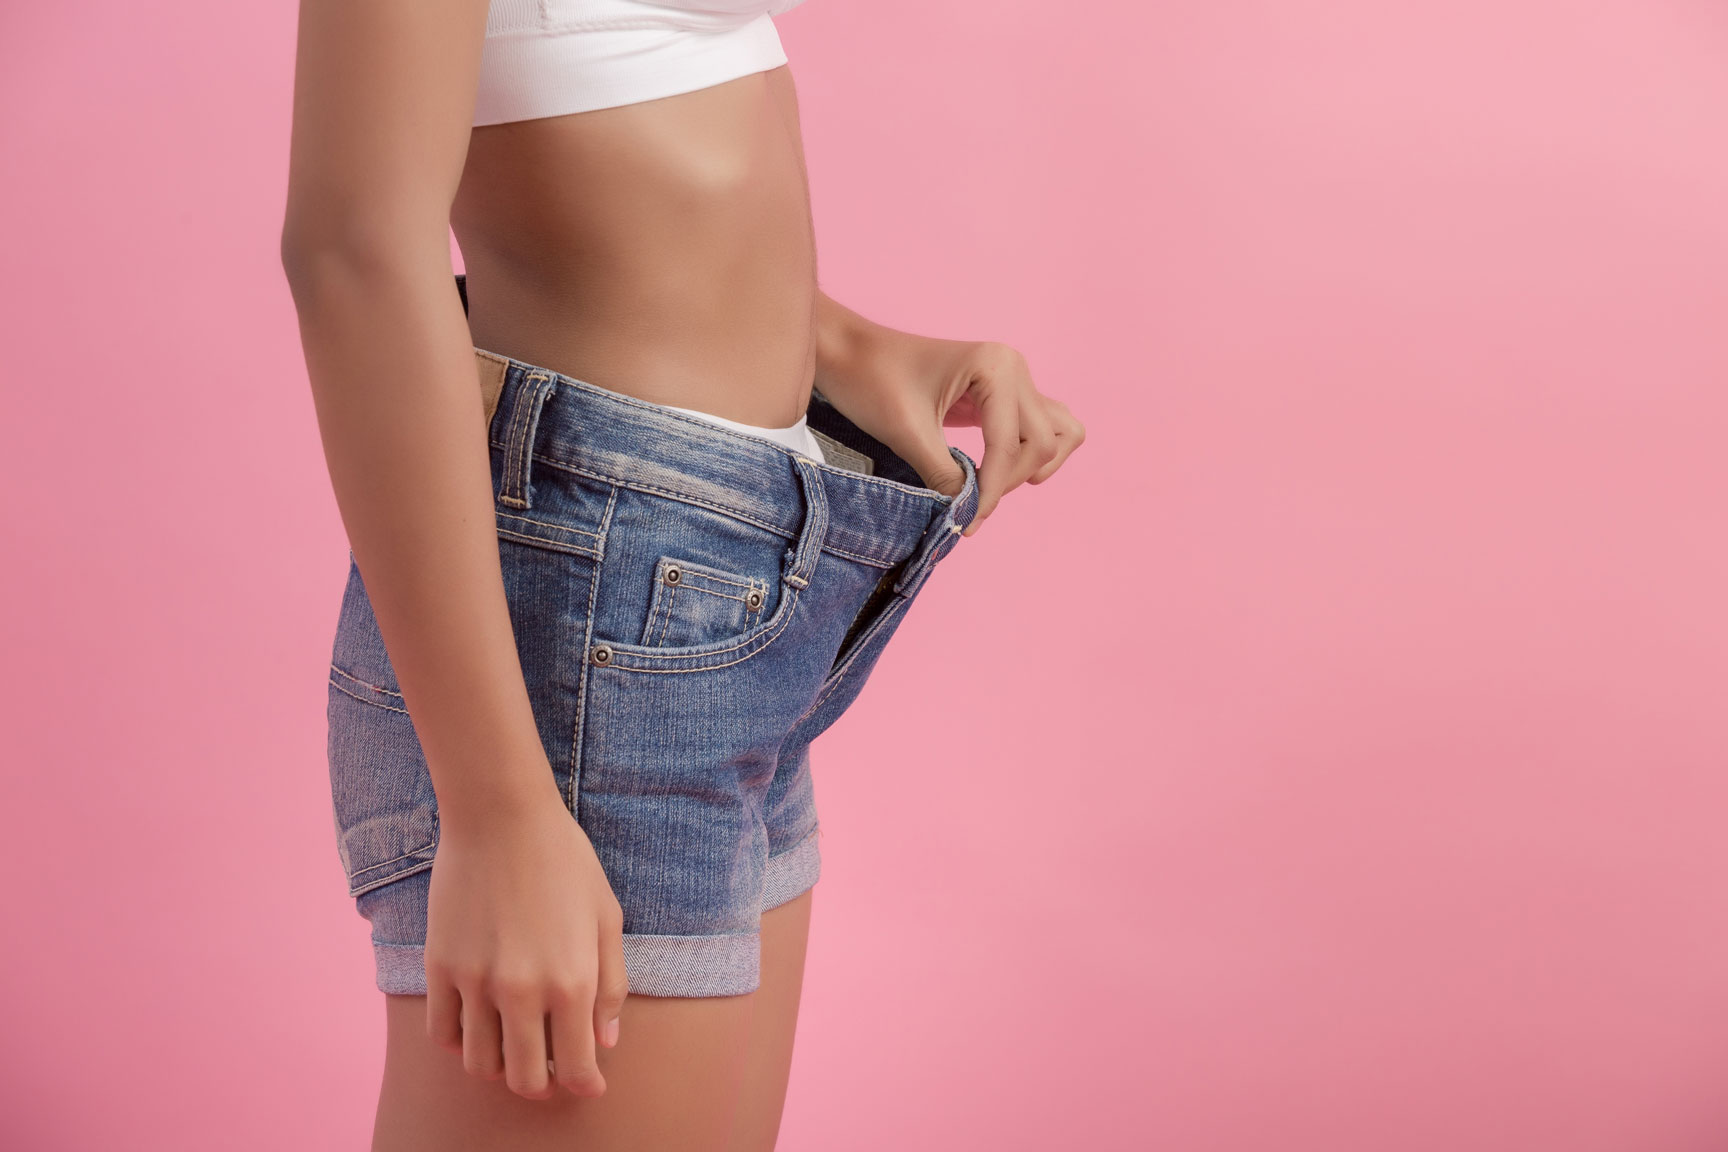 poc woman diet weightloss loose shorts or pants